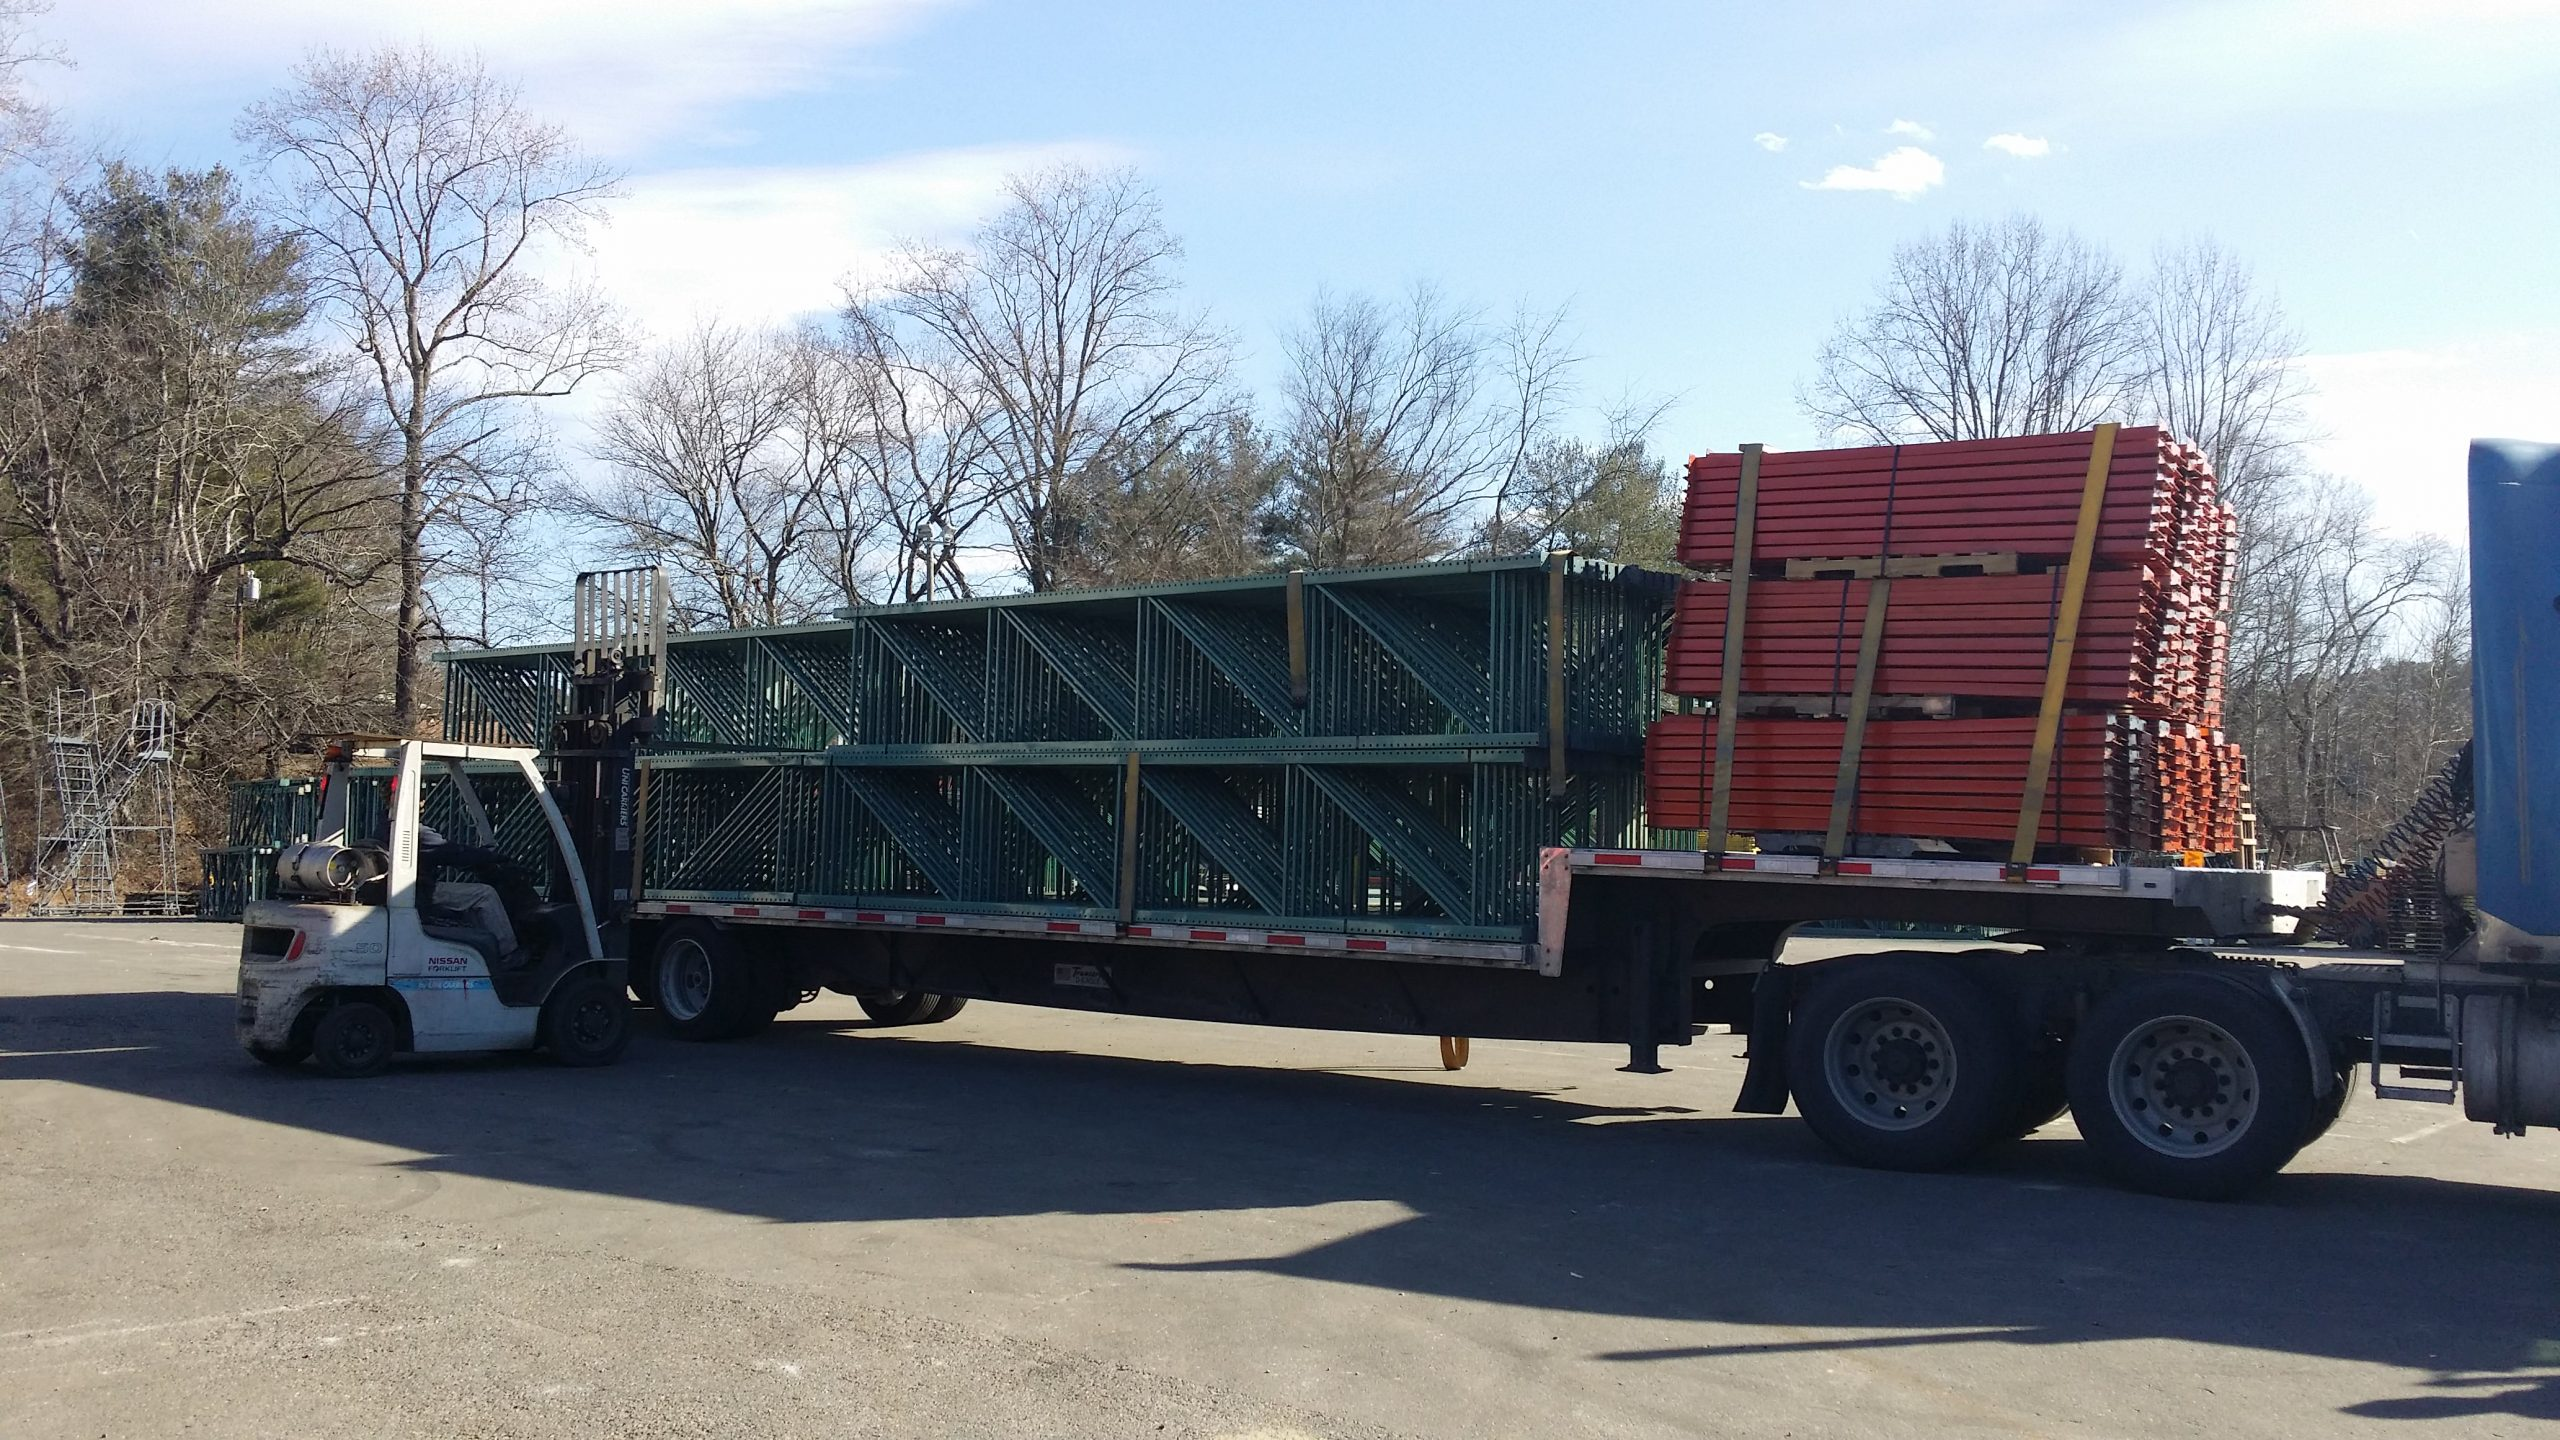 Flatbed truck loaded with teardrop uprights and teardrop beams